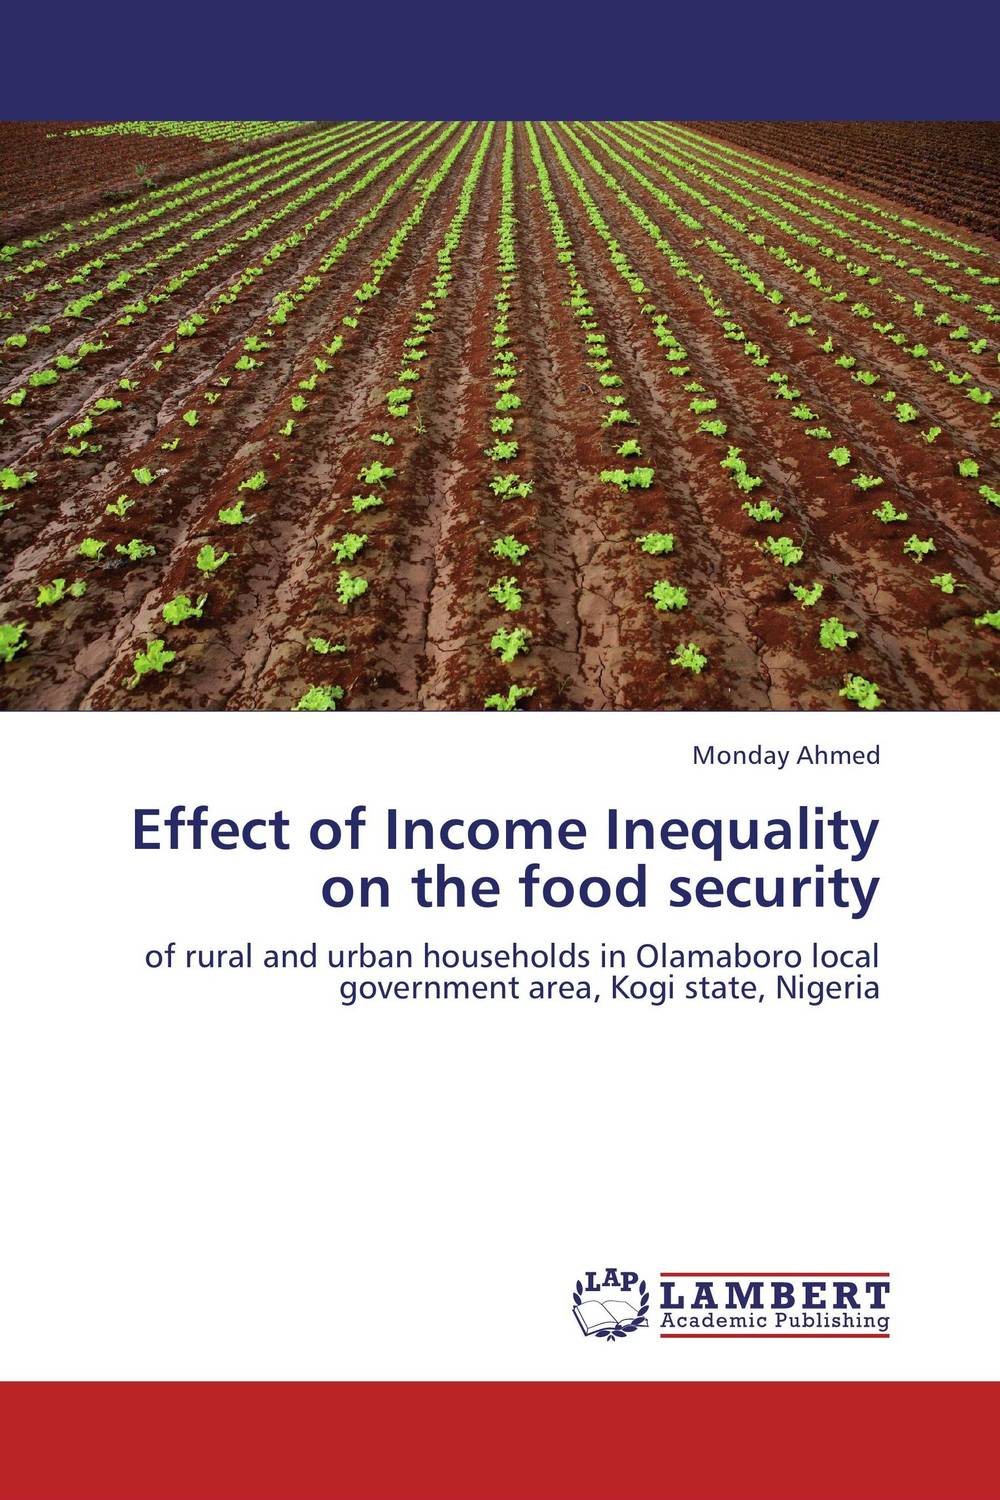 Effect of Income Inequality on the food security thermo operated water valves can be used in food processing equipments biomass boilers and hydraulic systems